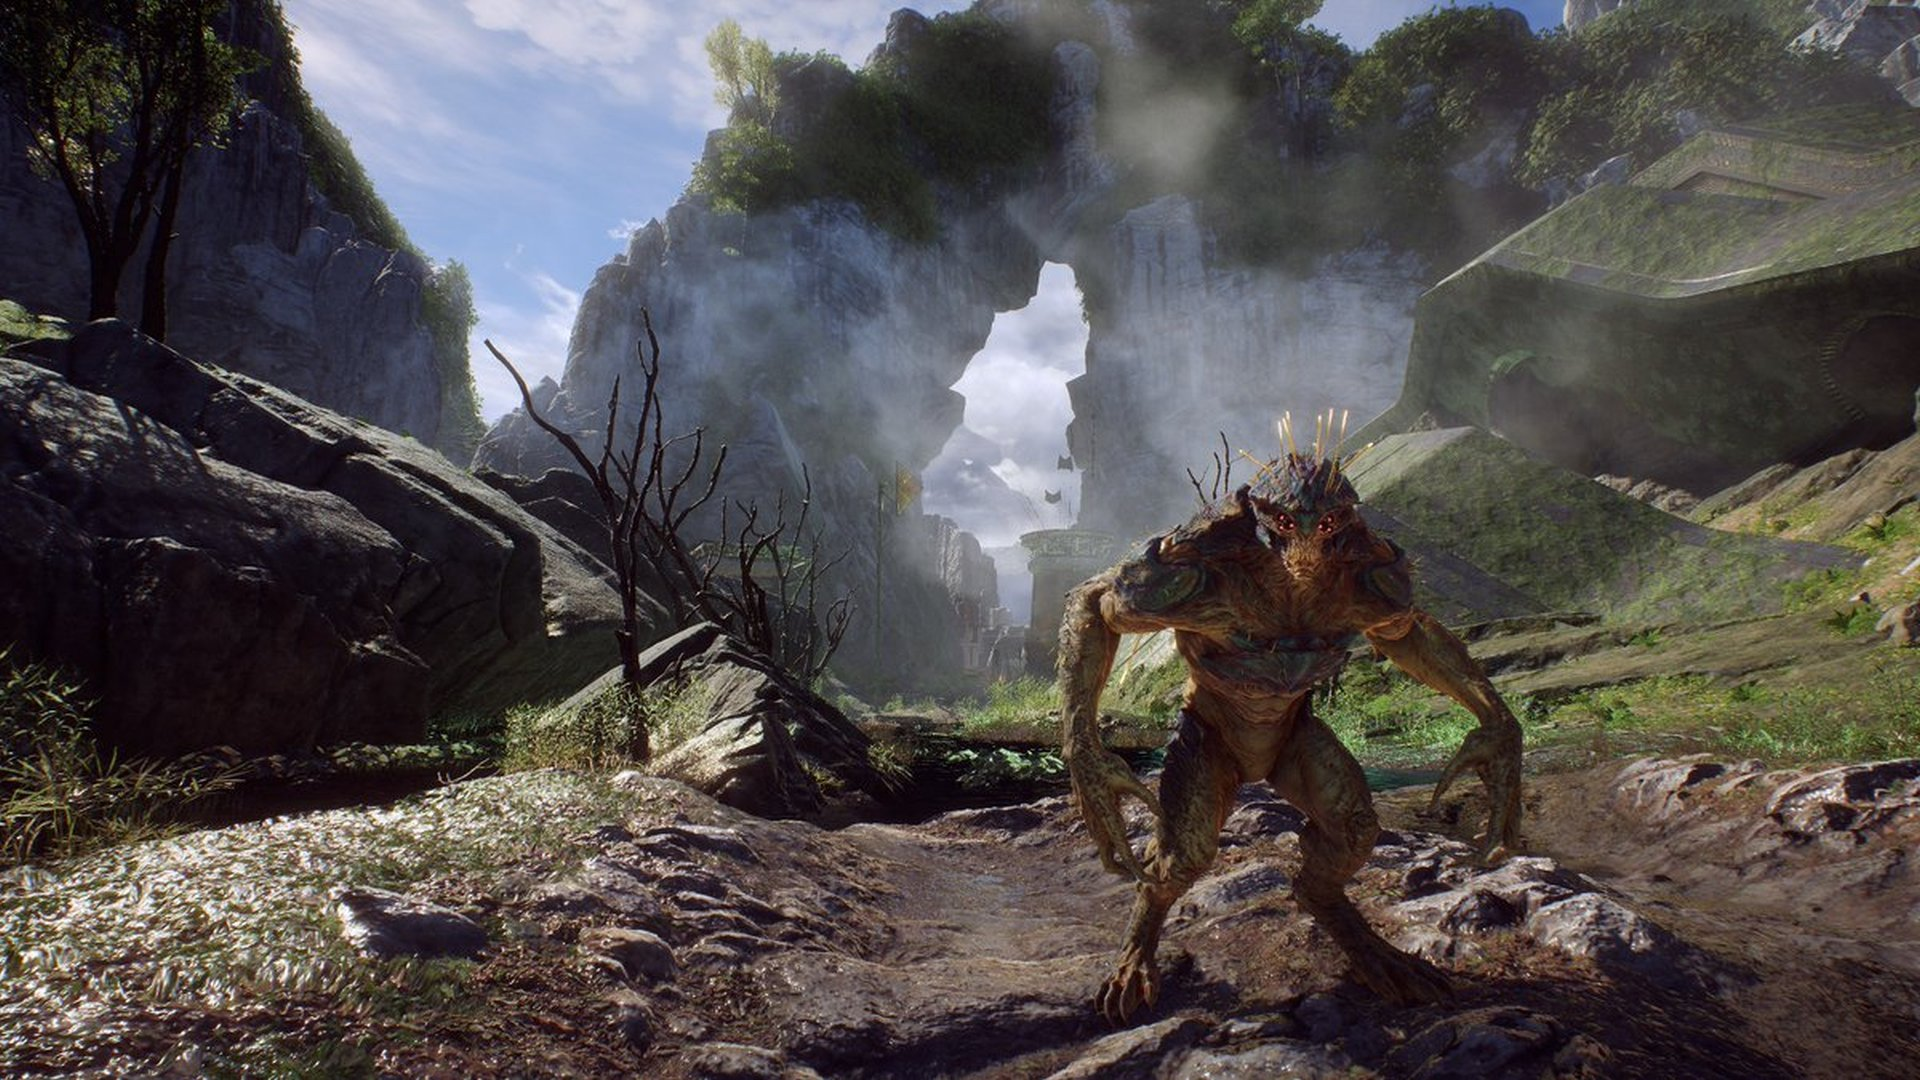 Hands On: How Well Does ANTHEM Run on PS4 and PS4 Pro